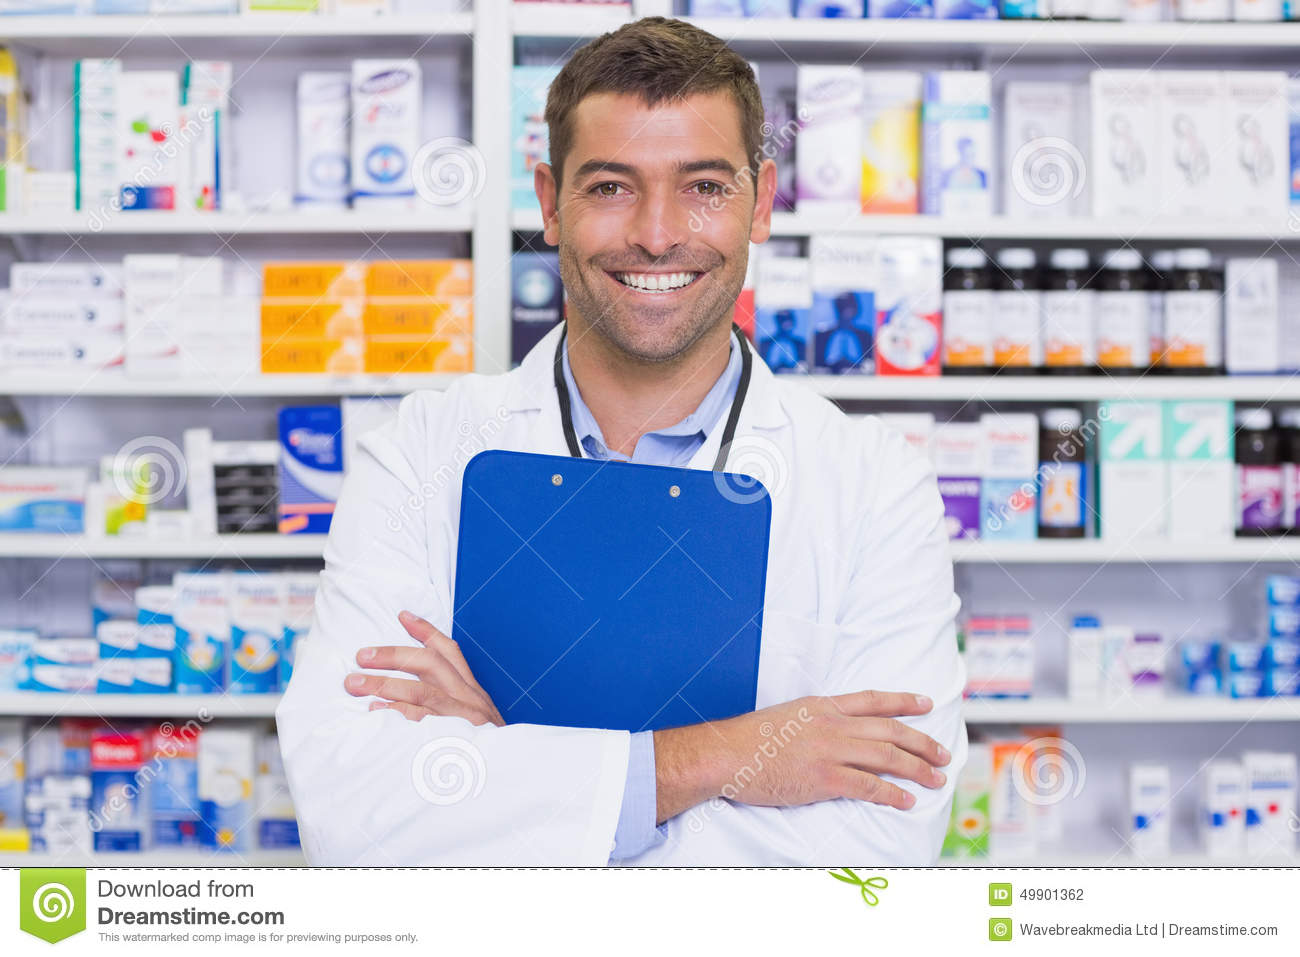 how to become hospital pharmacist